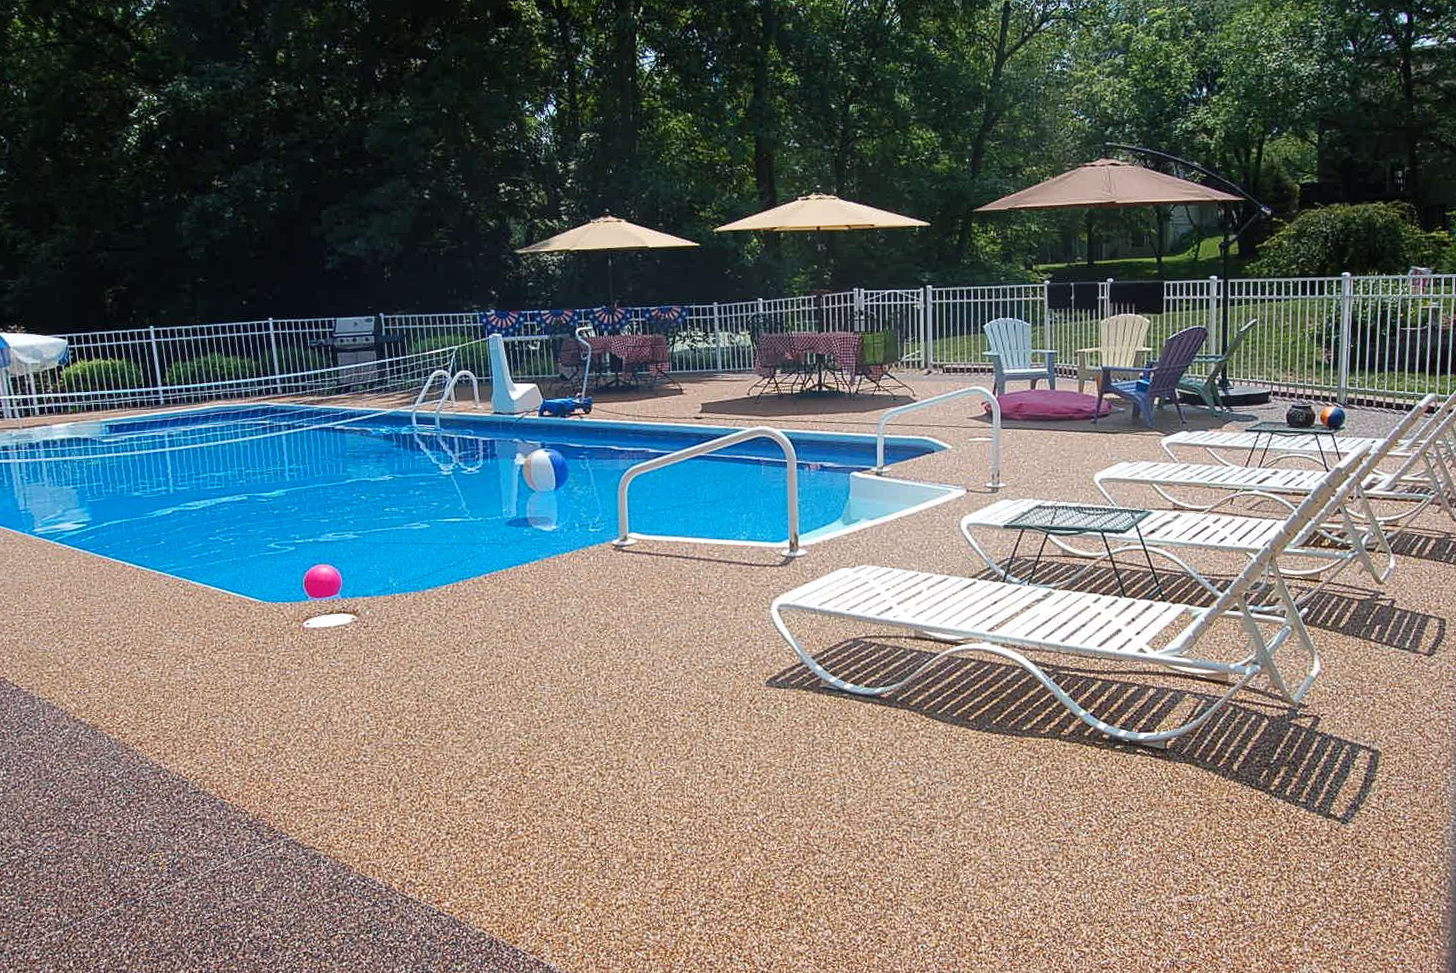 Resurface concrete pool deck home design ideas Diy resurfacing concrete swimming pool deck ideas